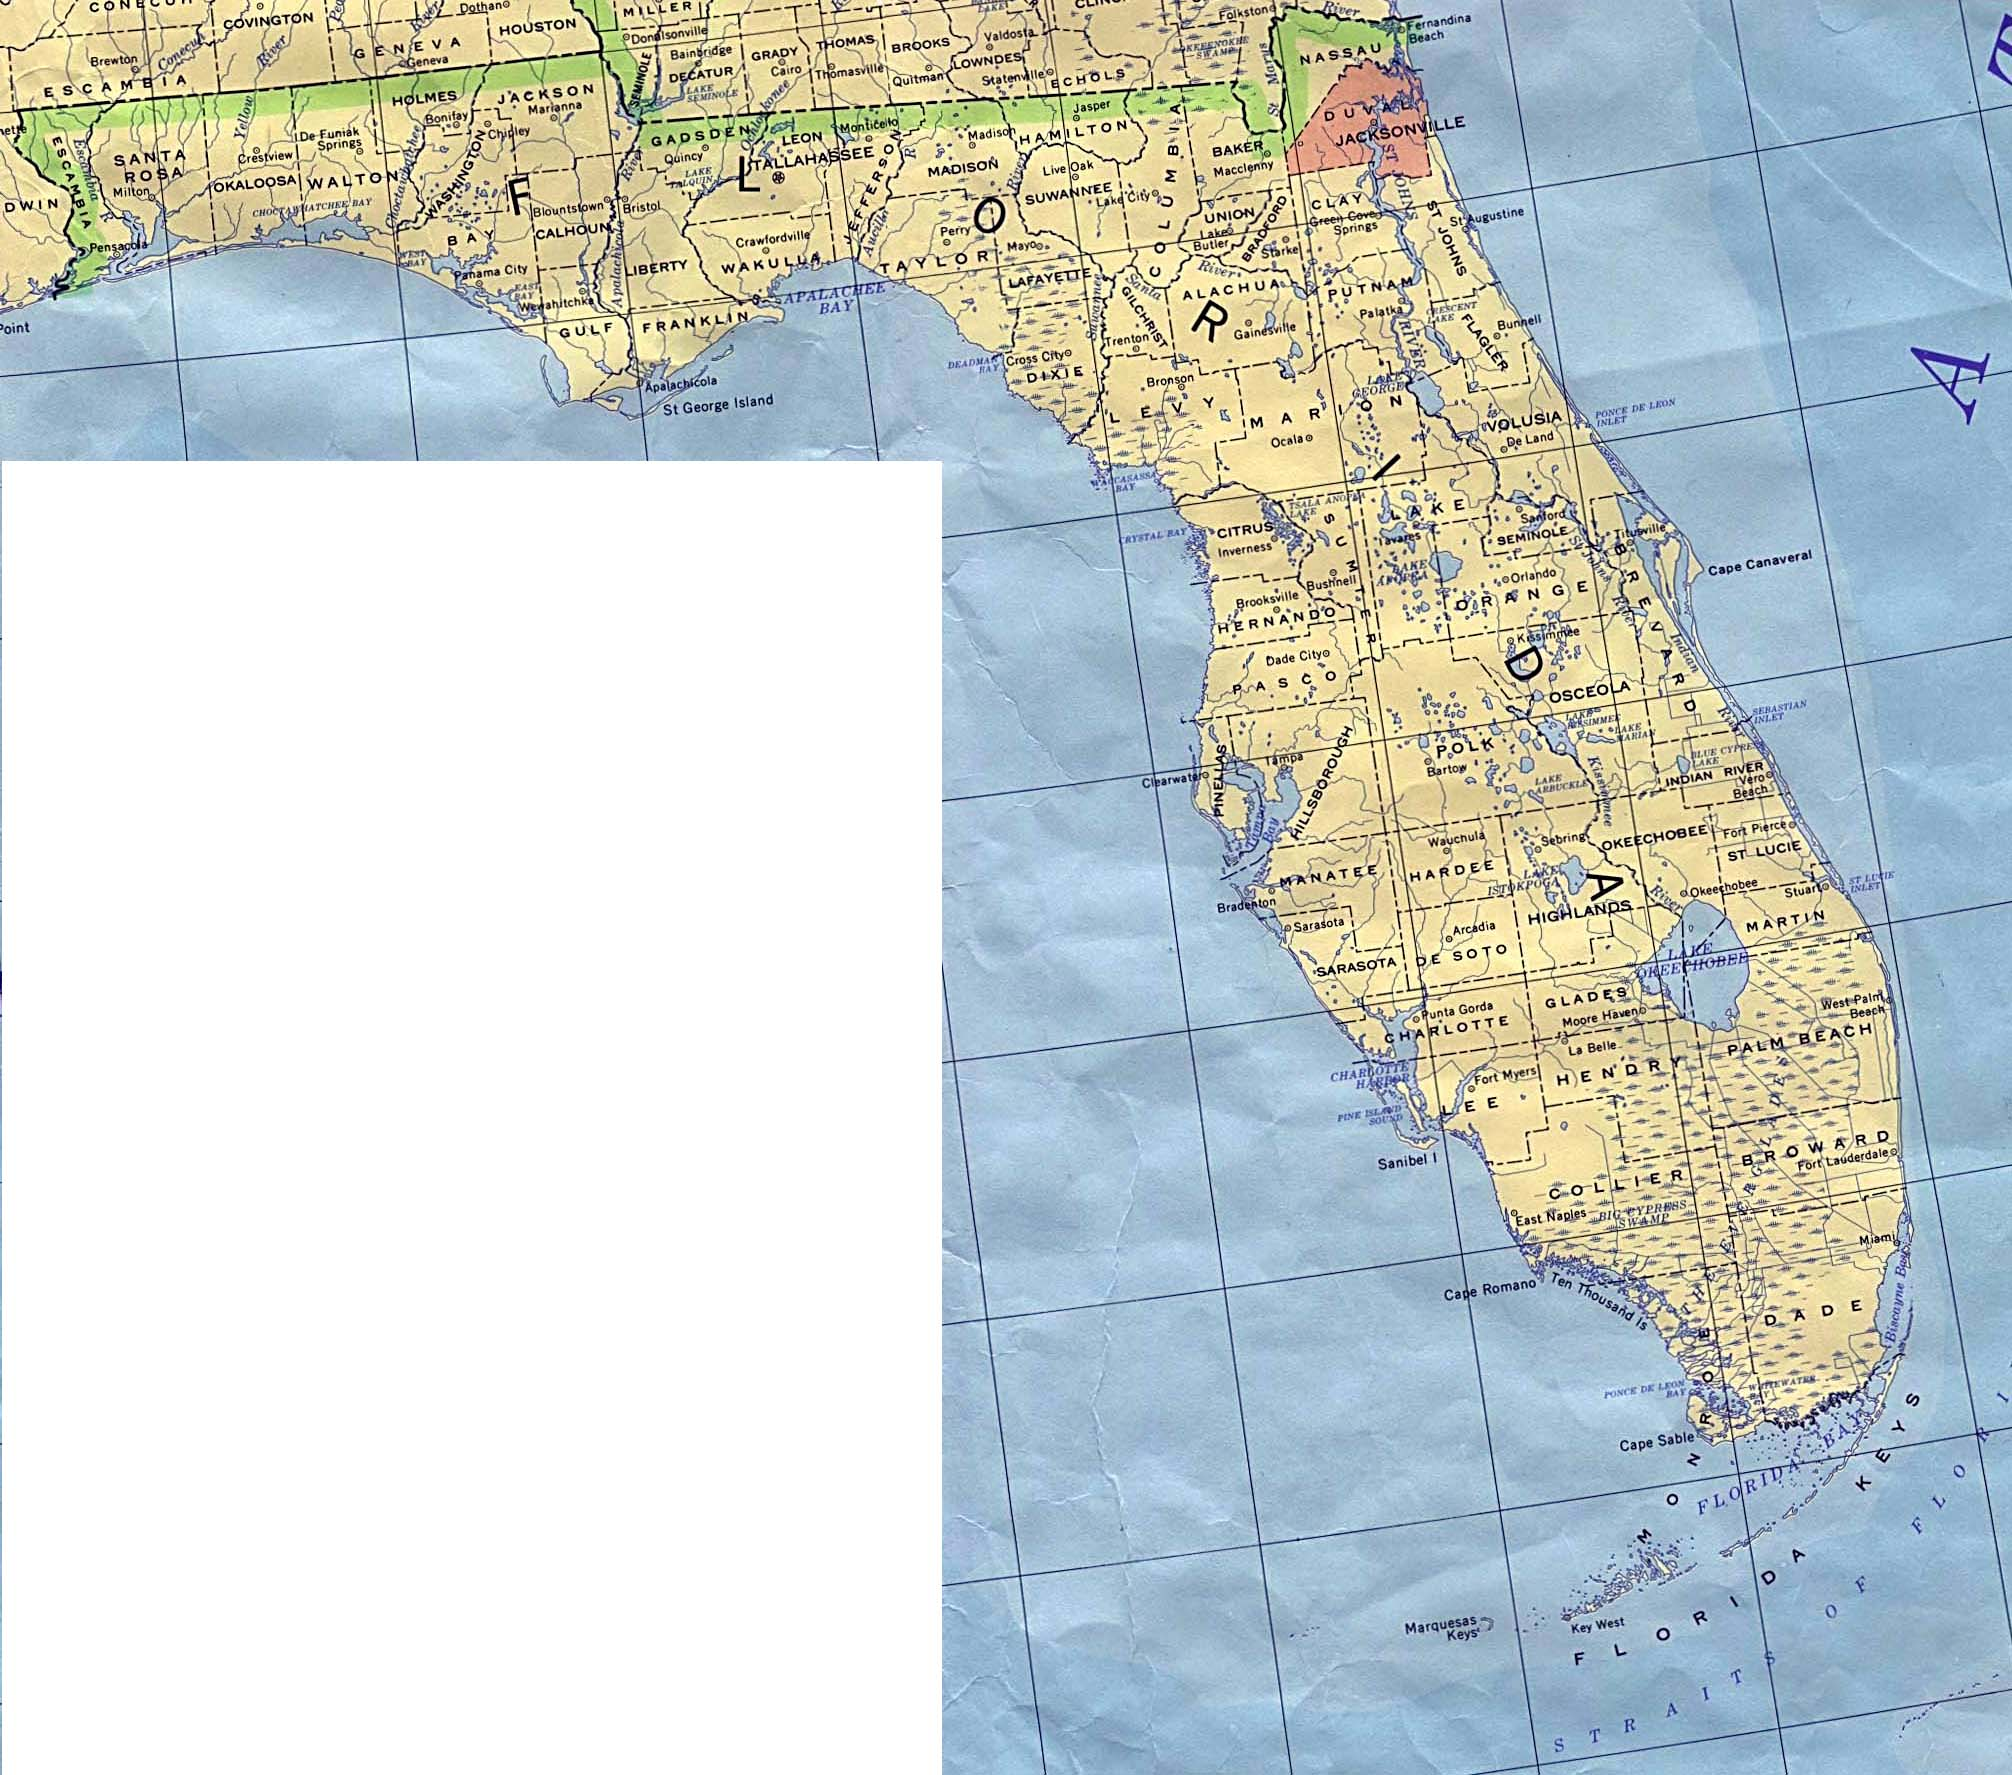 Florida Maps - Perry-Castañeda Map Collection - UT Liry Online on